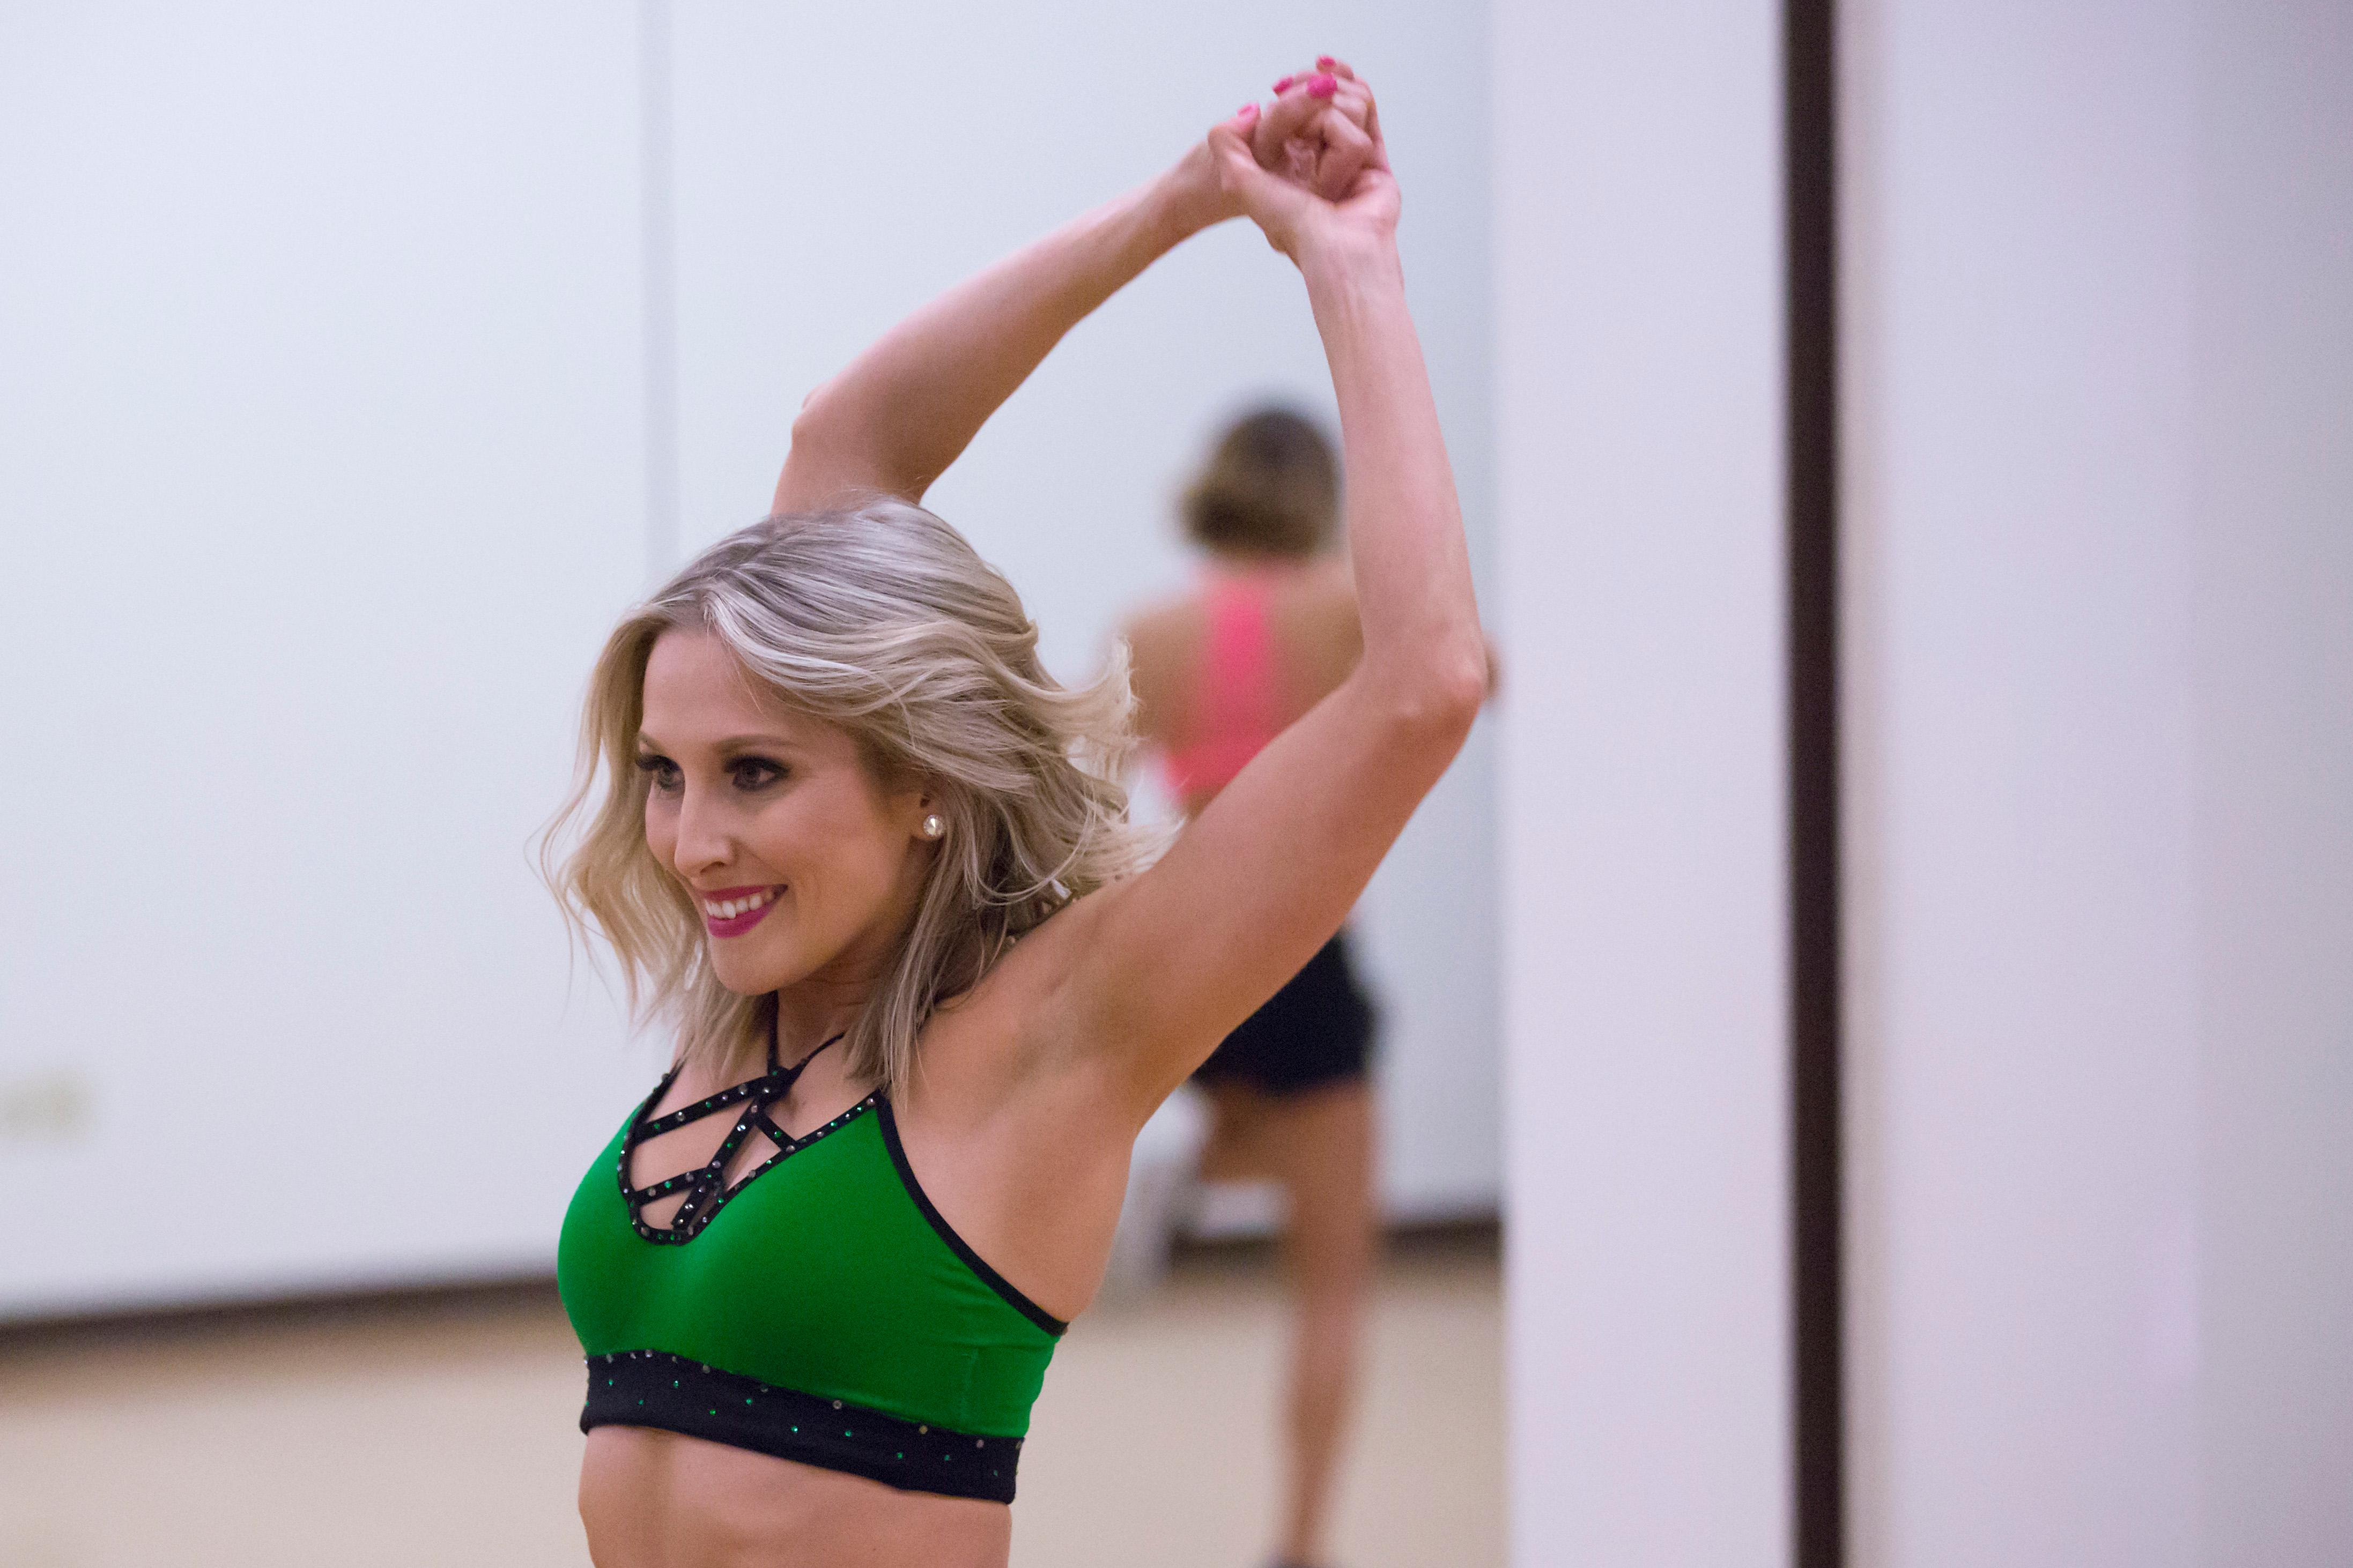 Today (Saturday April 22) was Day 1 of the multi-day audition series to become part of the 2017 Sea Gals. Hundreds of hopefuls came out to the Virginia Mason Athletic Center - rookies and returning Gals alike. The contestants danced freestyle for one minute to the music provided by the Seahawks, and those invited back will move on to the next round of tryout Sunday, April 23. The final squad will be chosen on Sunday, May 7. (Sy Bean / Seattle Refined)